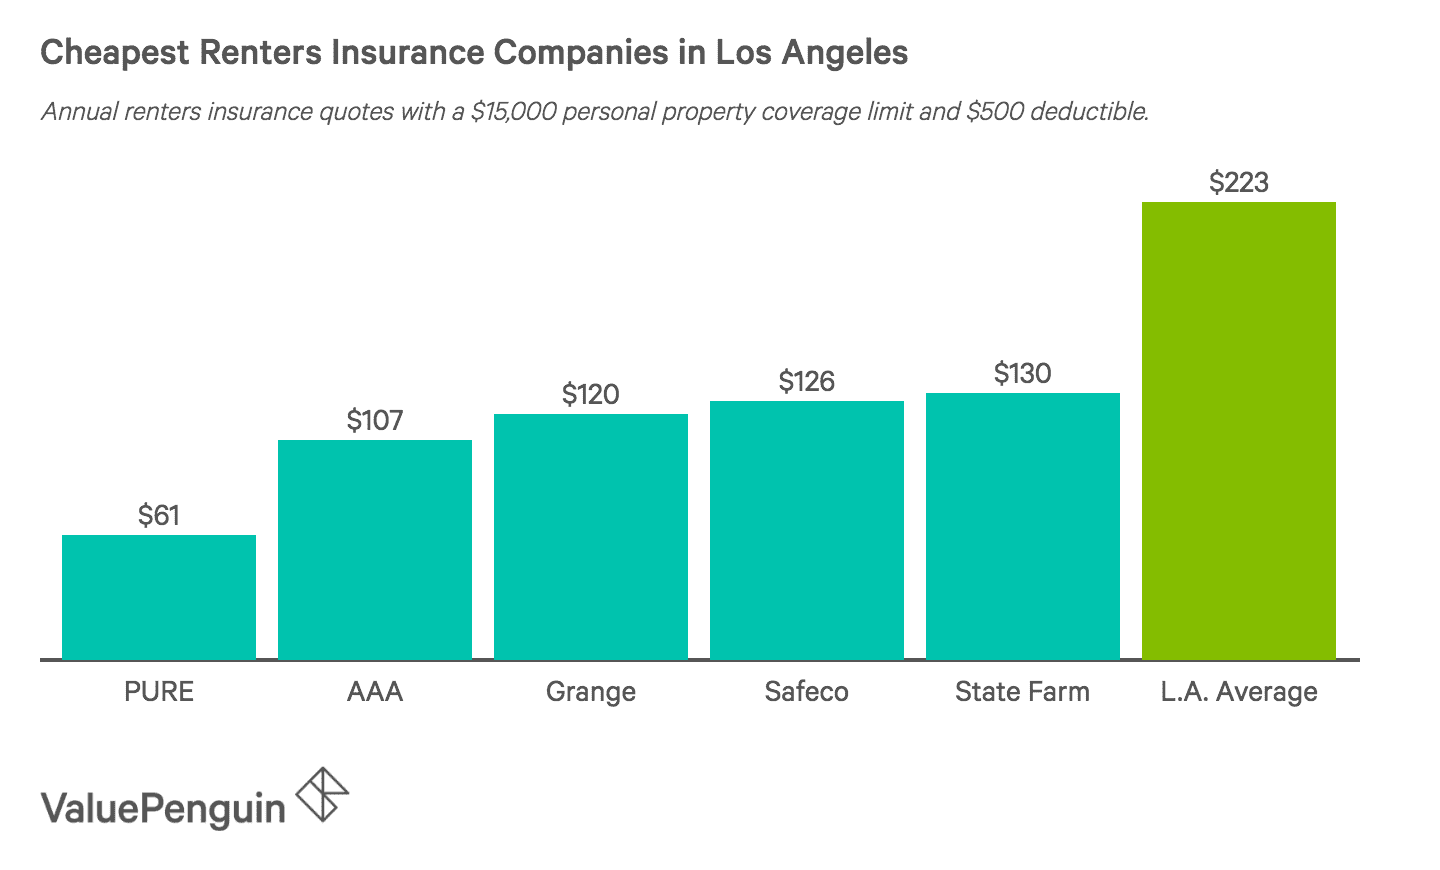 Who Has The Cheapest Renters Insurance Quotes In Los Angeles Valuepenguin